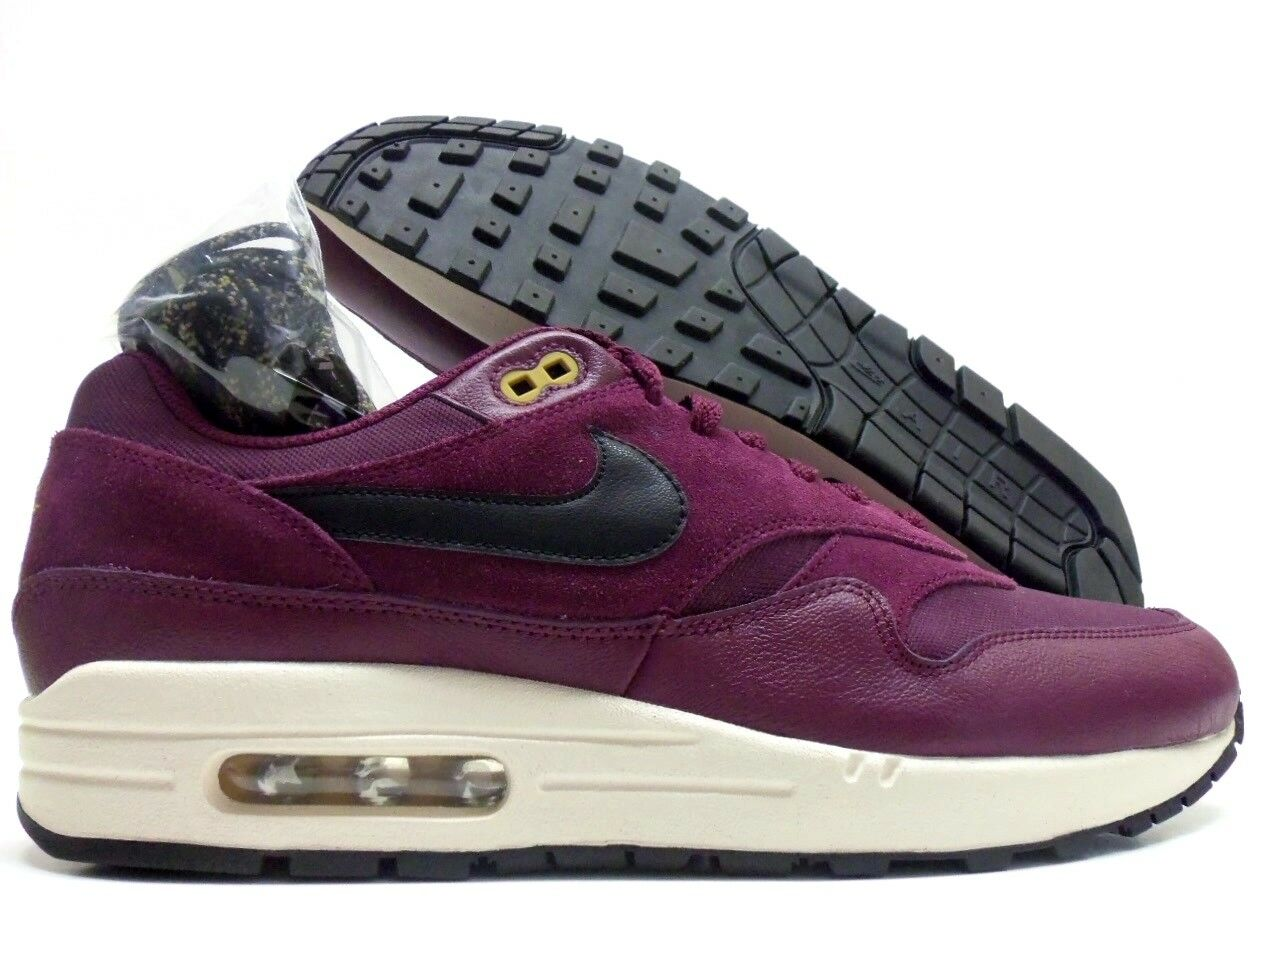 NIKE AIR MAX 1 PREMIUM BORDEAUX BLACK-DESERT MOSS SIZE MEN'S 11 [875844-601]